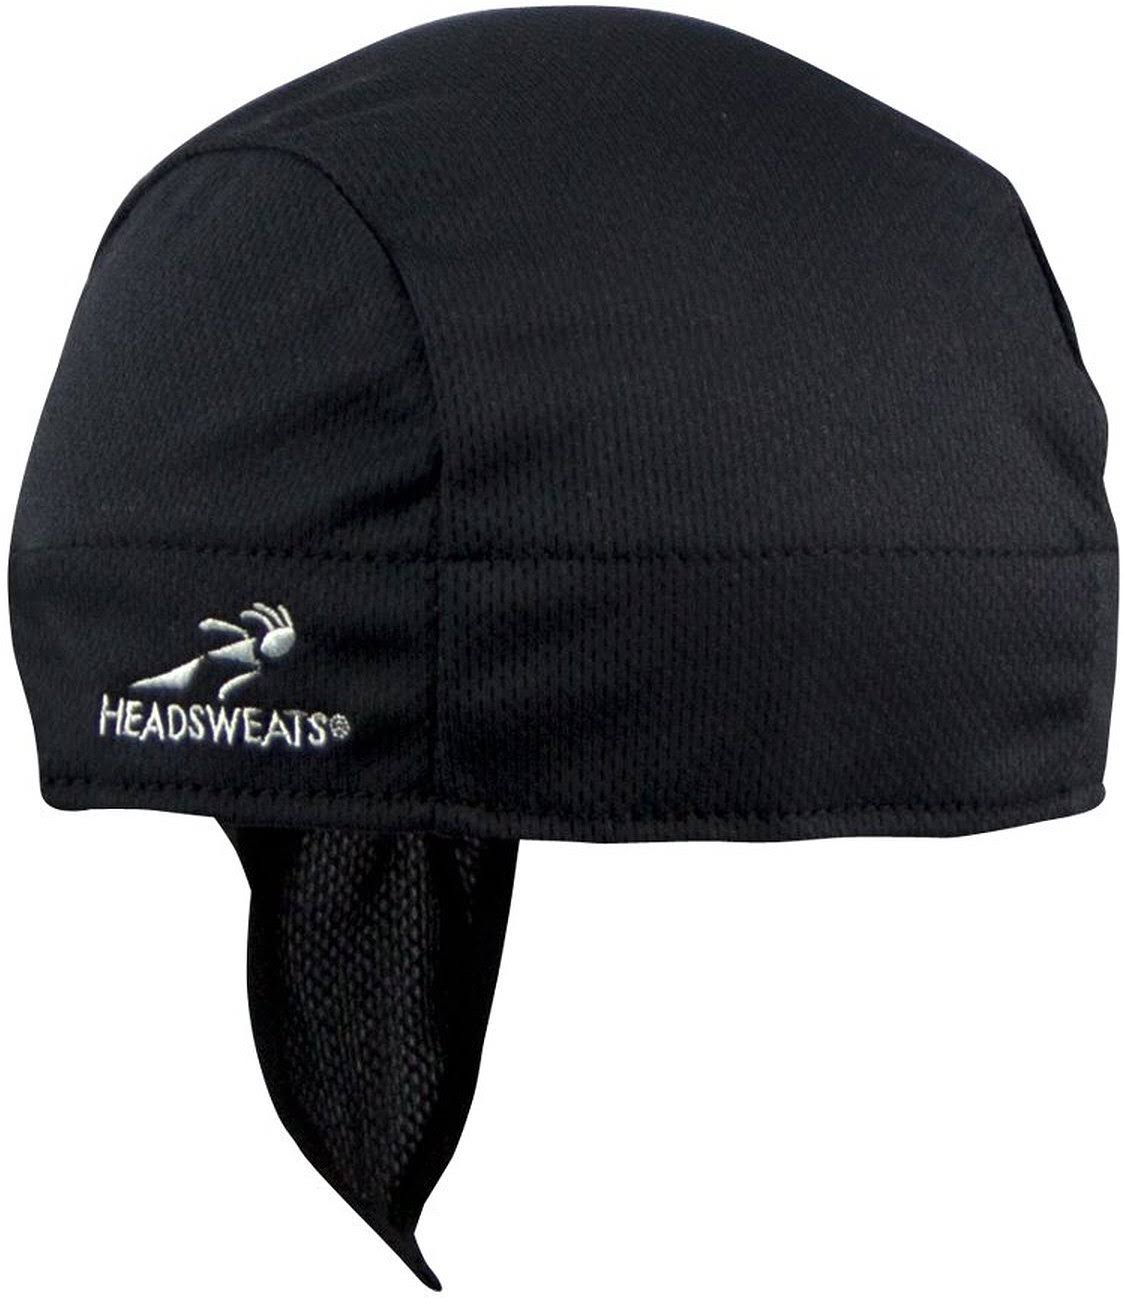 Headsweats Super Duty Shorty Beanie and Helmet Liner - Black, One Size